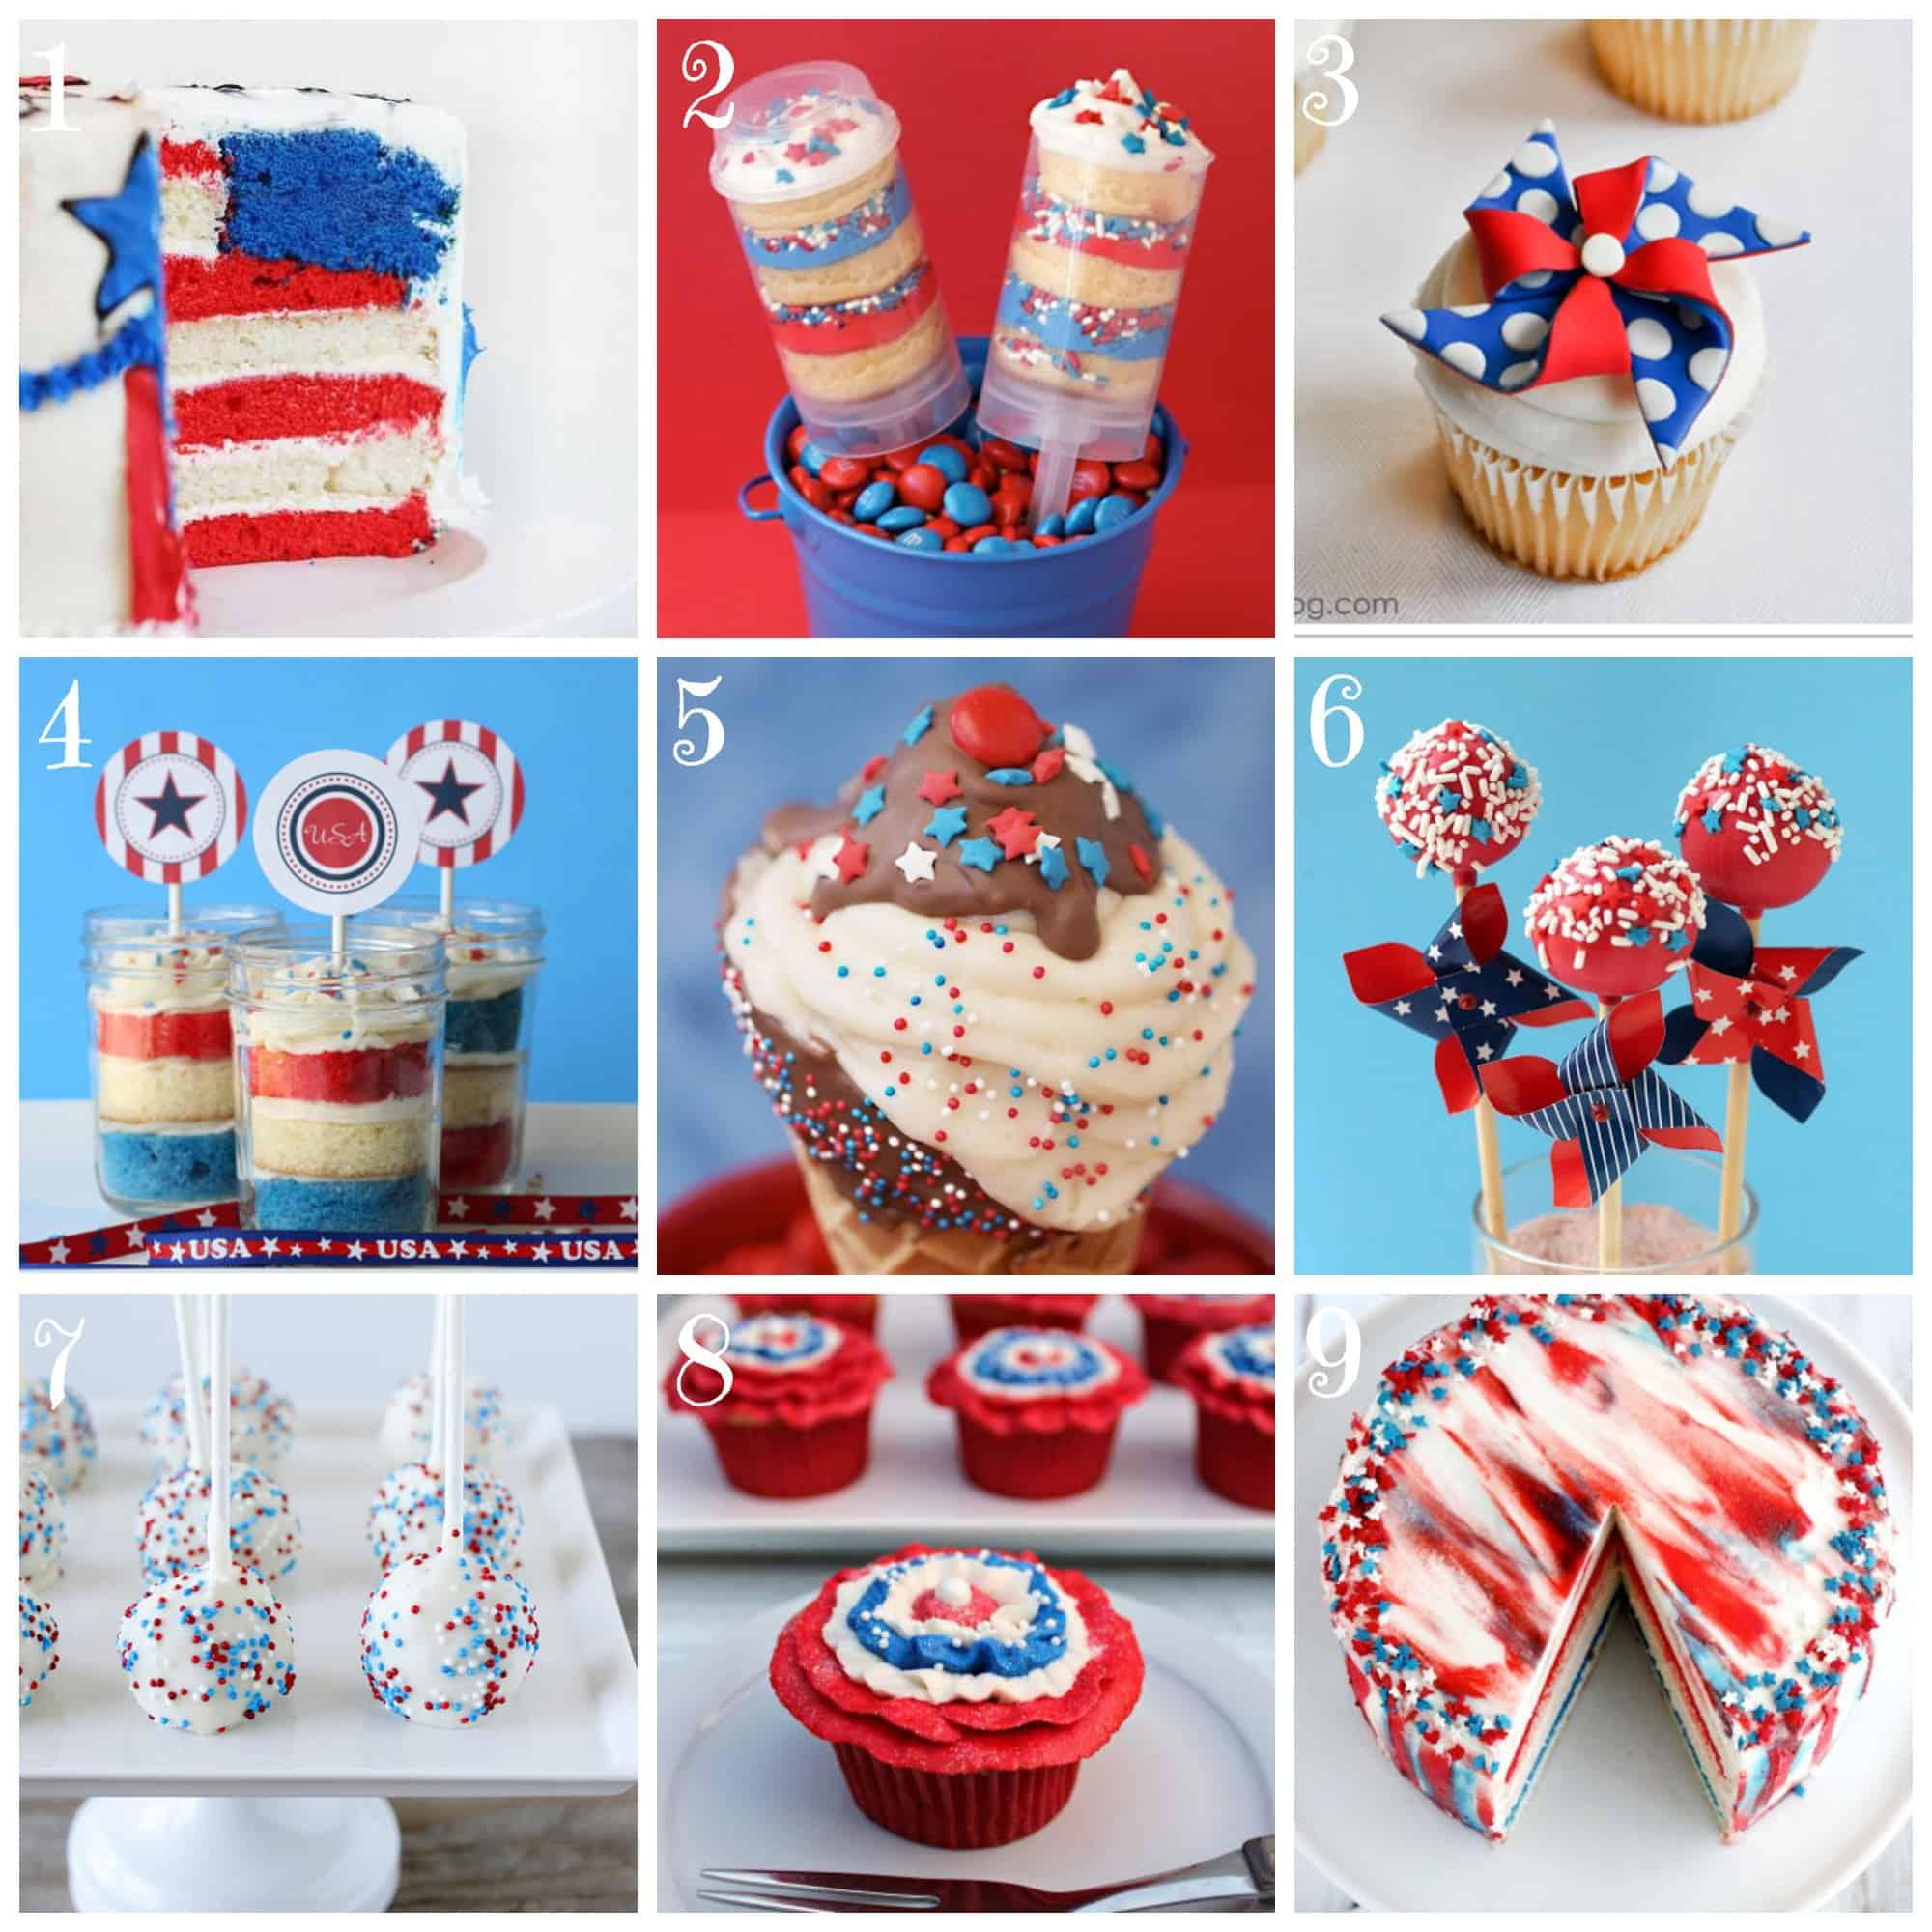 Festive 4th of July Cakes and Cupcakes!